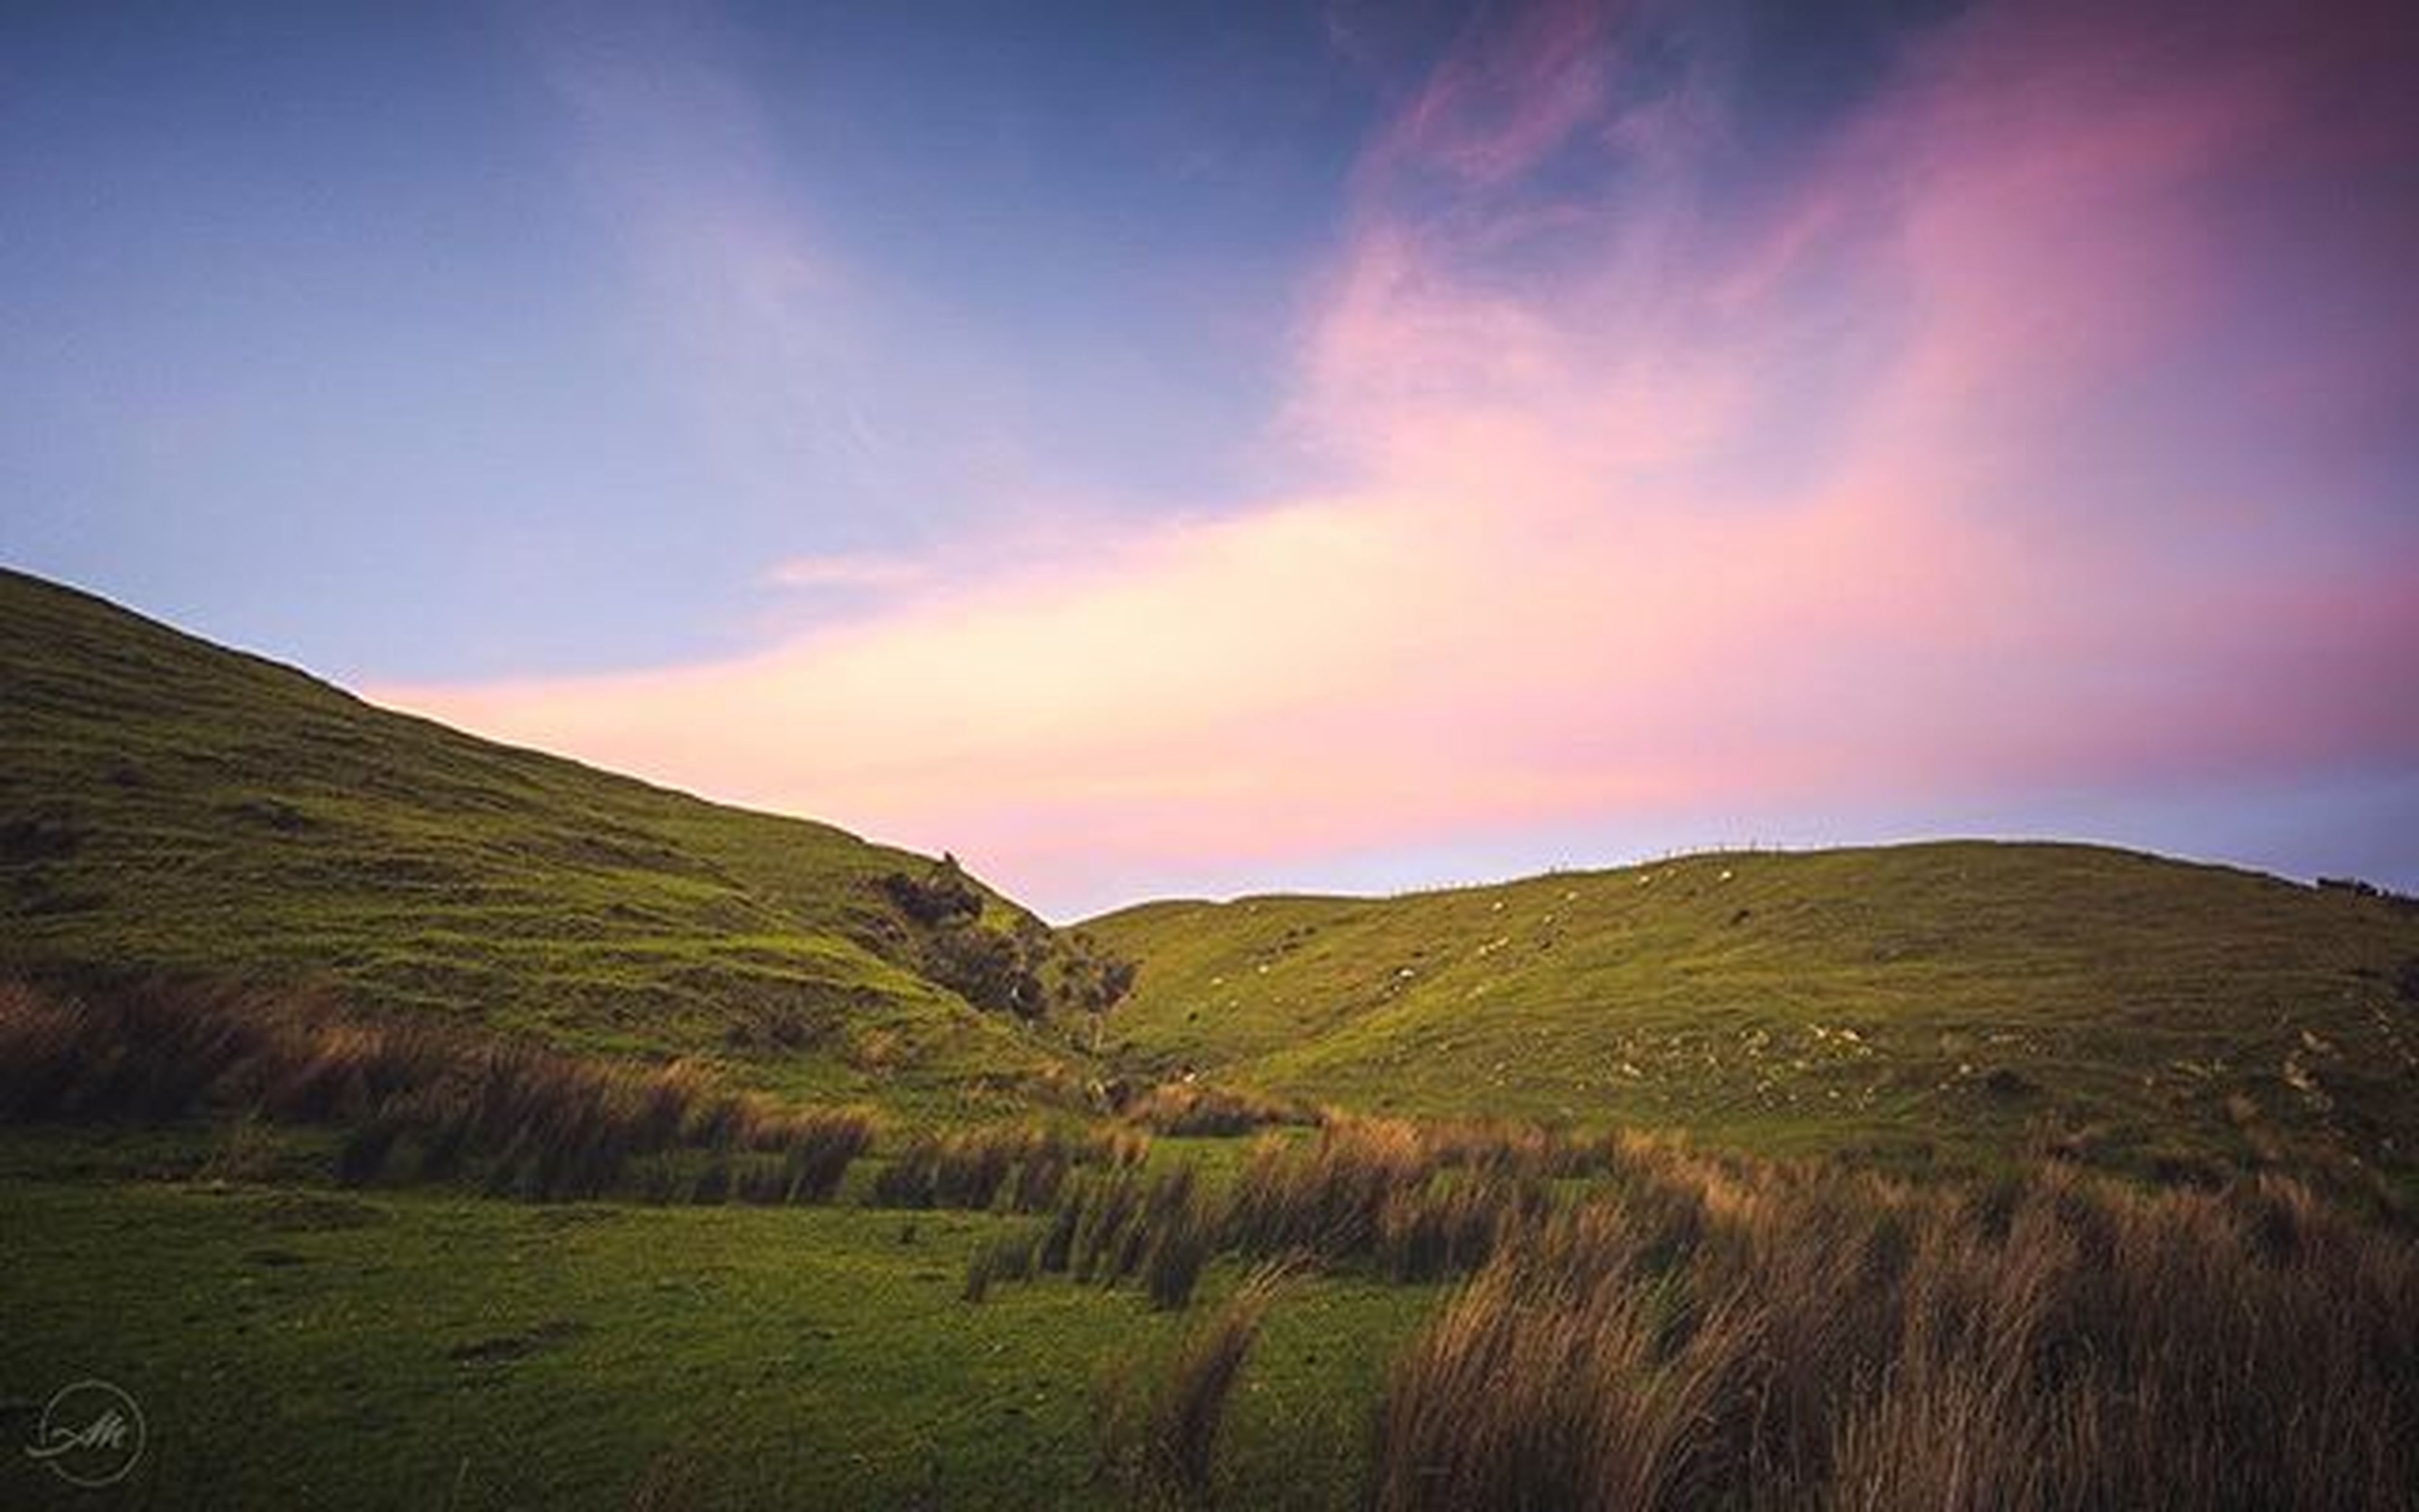 I couldn't get over the colours of this sunset. We'd pulled up to freedom camp beside the Porirua Harbour for the night and the sky begun to light up. Such gorgeous hues of pink, matched with the deep purpley blues of the sky and contrasted by the warm greens of the hillside. I had hoped some of the lil lambs would be closer to the fence, but they do look cute all speckled throughout the hillside. Not long after the sun had set we encountered the windiest night ever!! They don't call it 'Windy Wellington' for nothing. Thought the camper was going to end up on its side at one point haha! ______________________________ @nikonaustralia @samyangru @purenewzealand @wellington_newzealand ______________________________ Stitchedpano Panorama Landscapephotography Landscape NikonLife Nikon Samyang Wideangle Newzealand Nzmustdo Purenewzealand Wellington  Windywellington Sheep Lambs Hillside Sunset Pink Blue Green Instagram